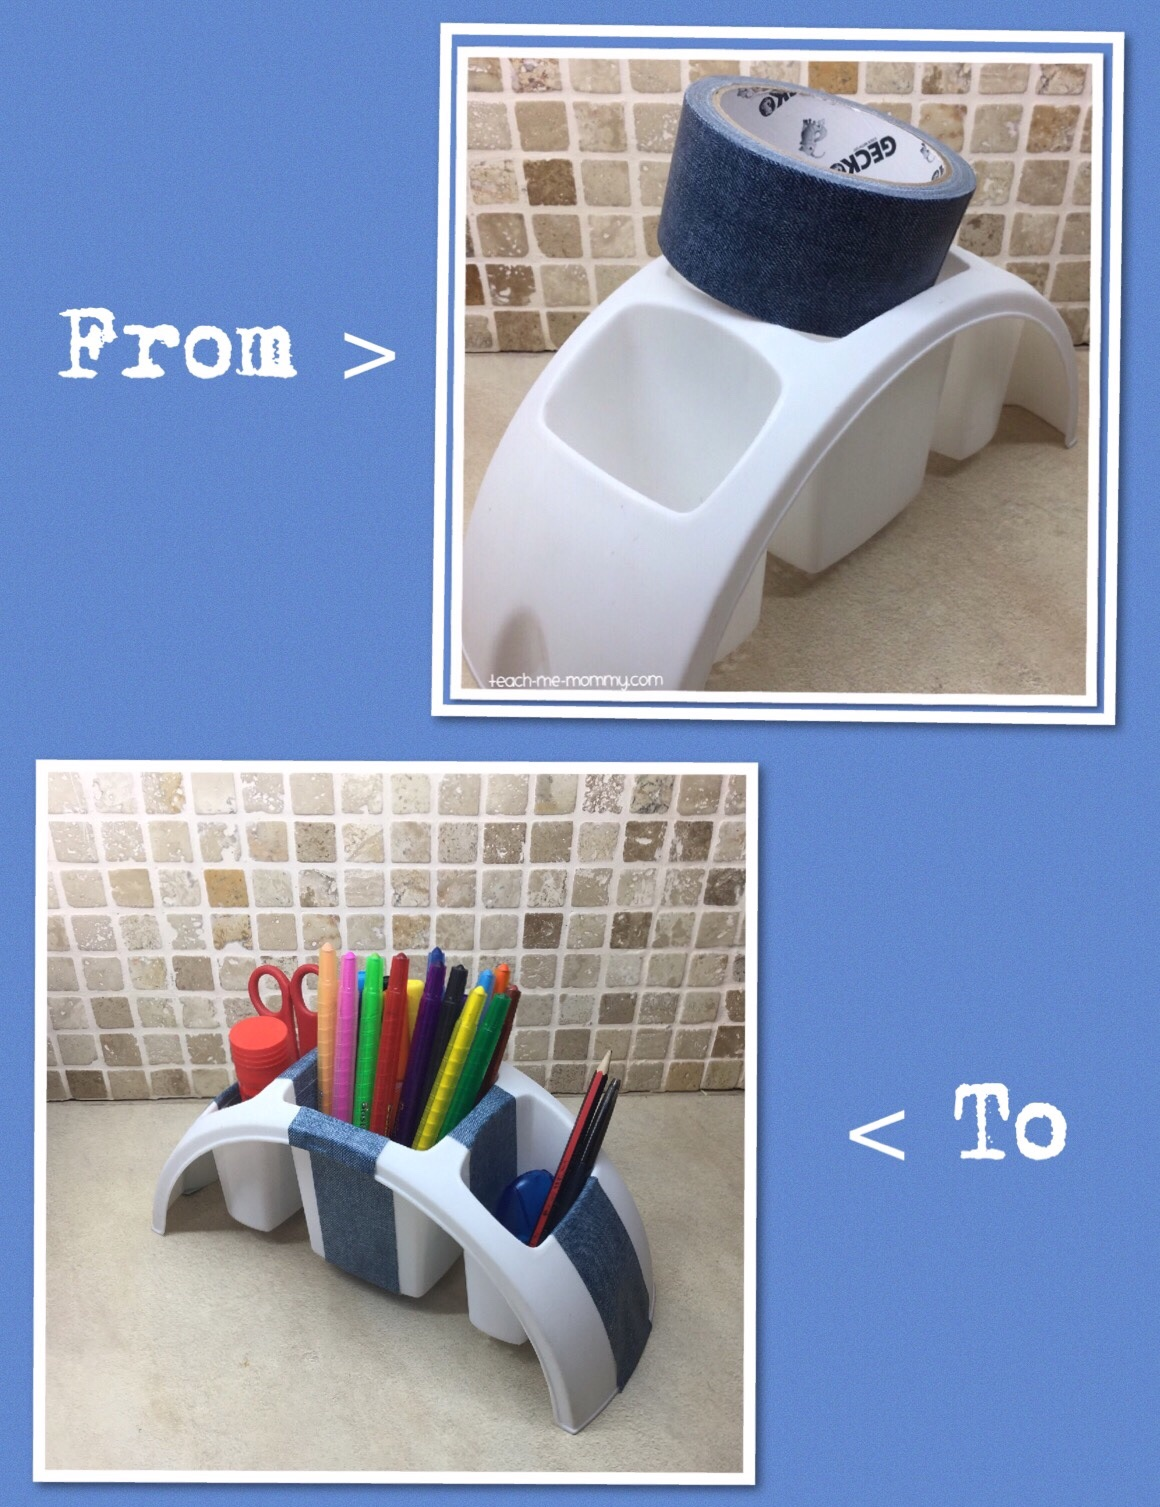 Cutlery holder to stationary holder